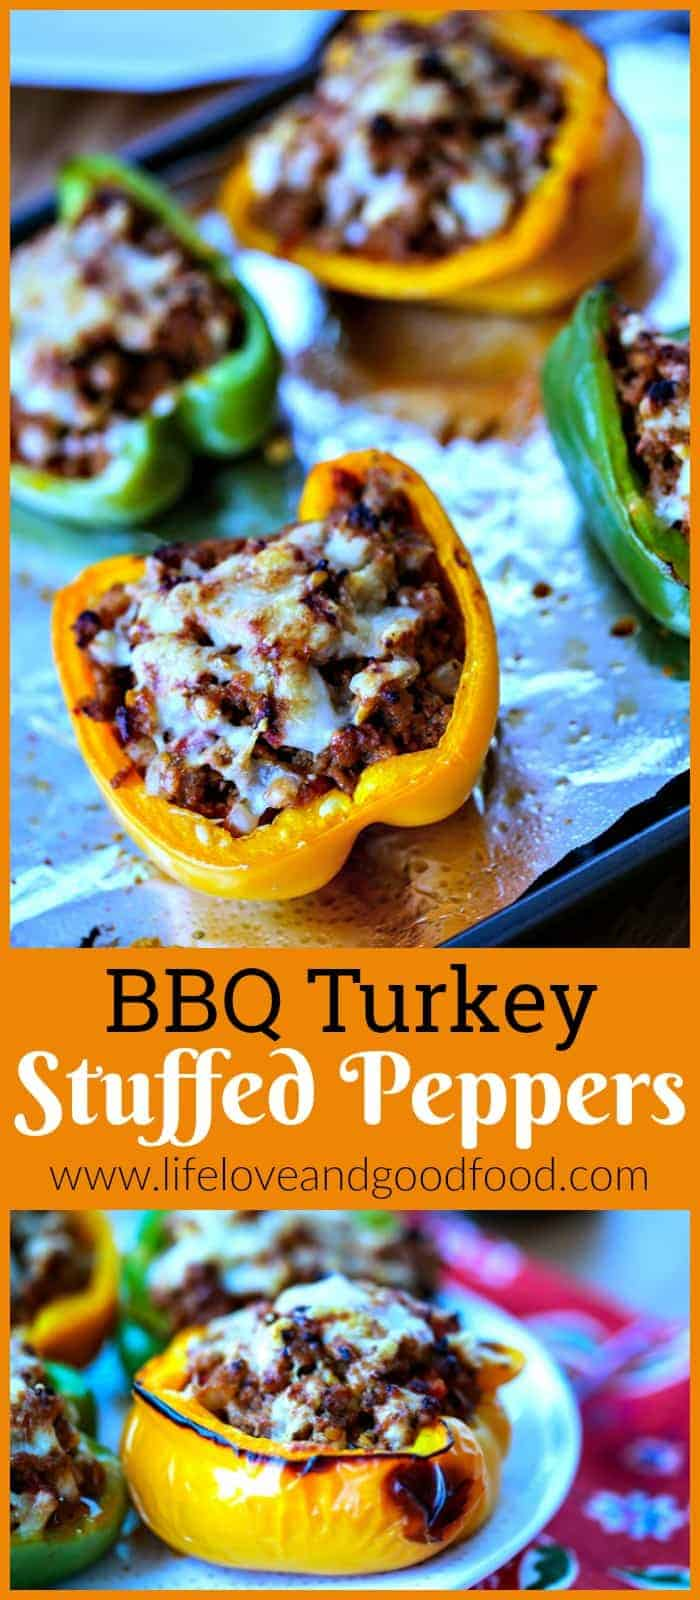 Stuff BBQ-flavored turkey mixture into red, yellow, or green sweet bell peppers for a leaner version of the classic stuffed peppers recipe. #dinner #stuffedpeppers